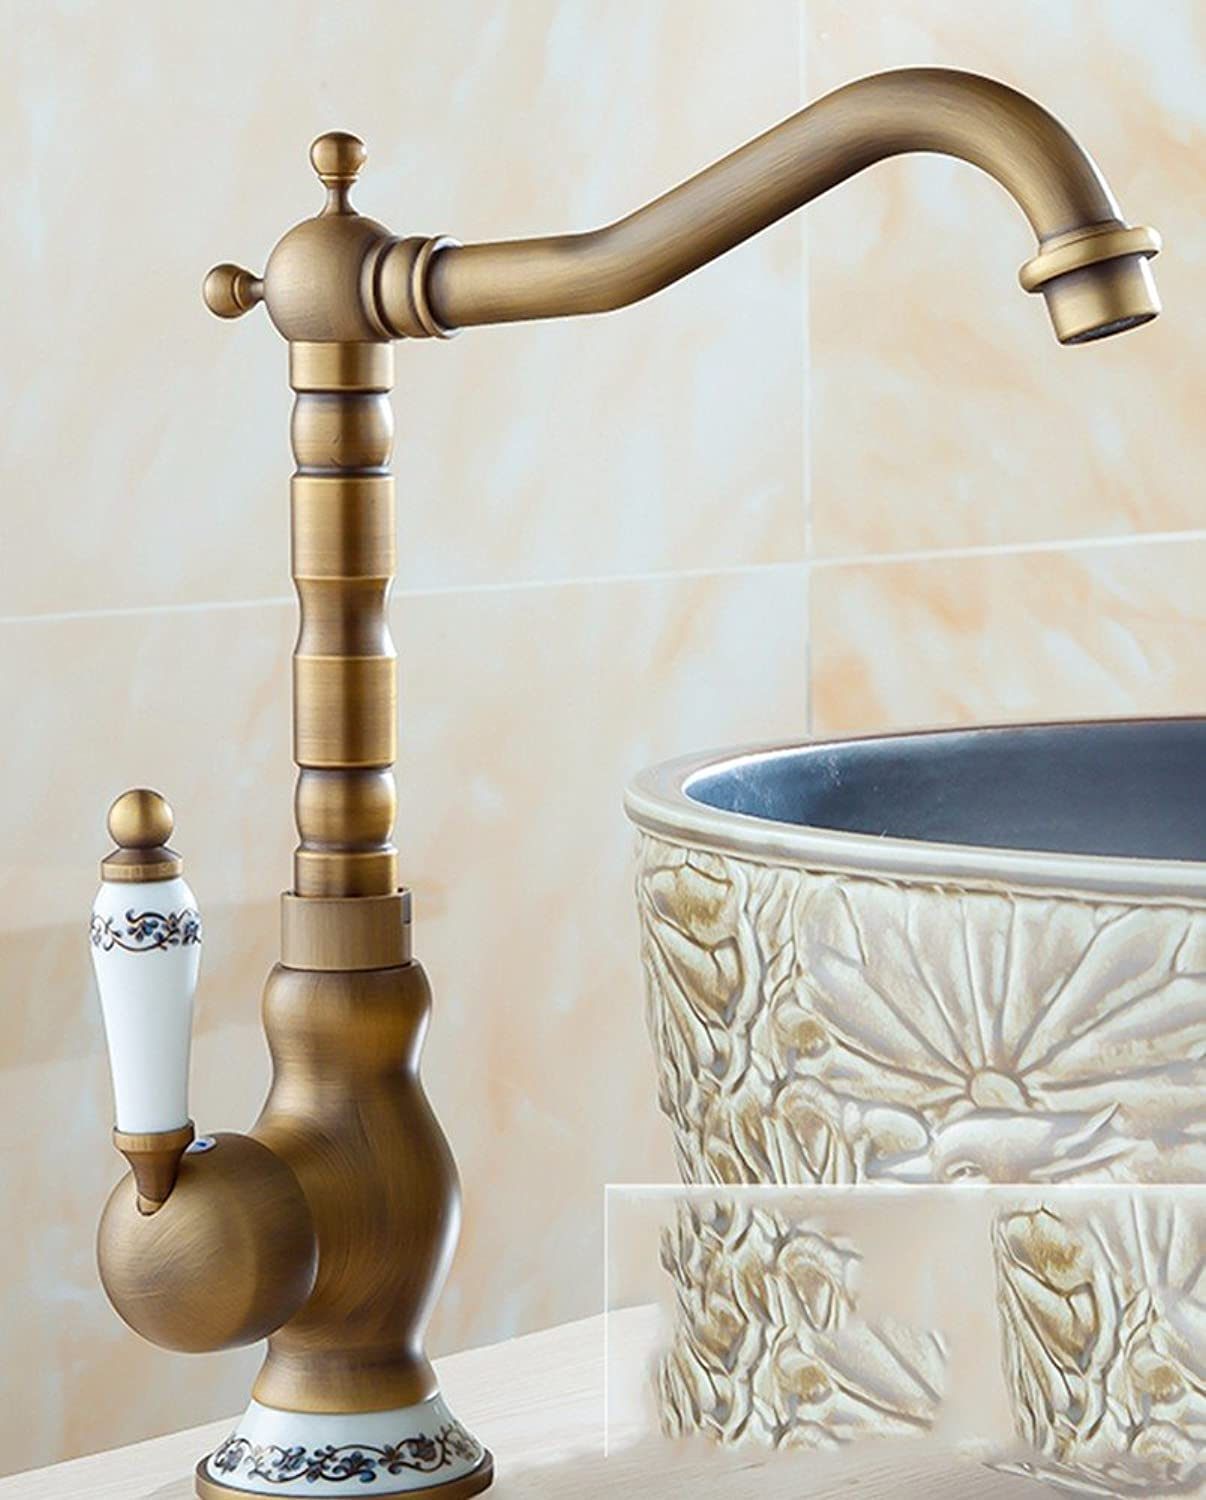 AWXJX European style retro style copper kitchen sink single hole double-tap water